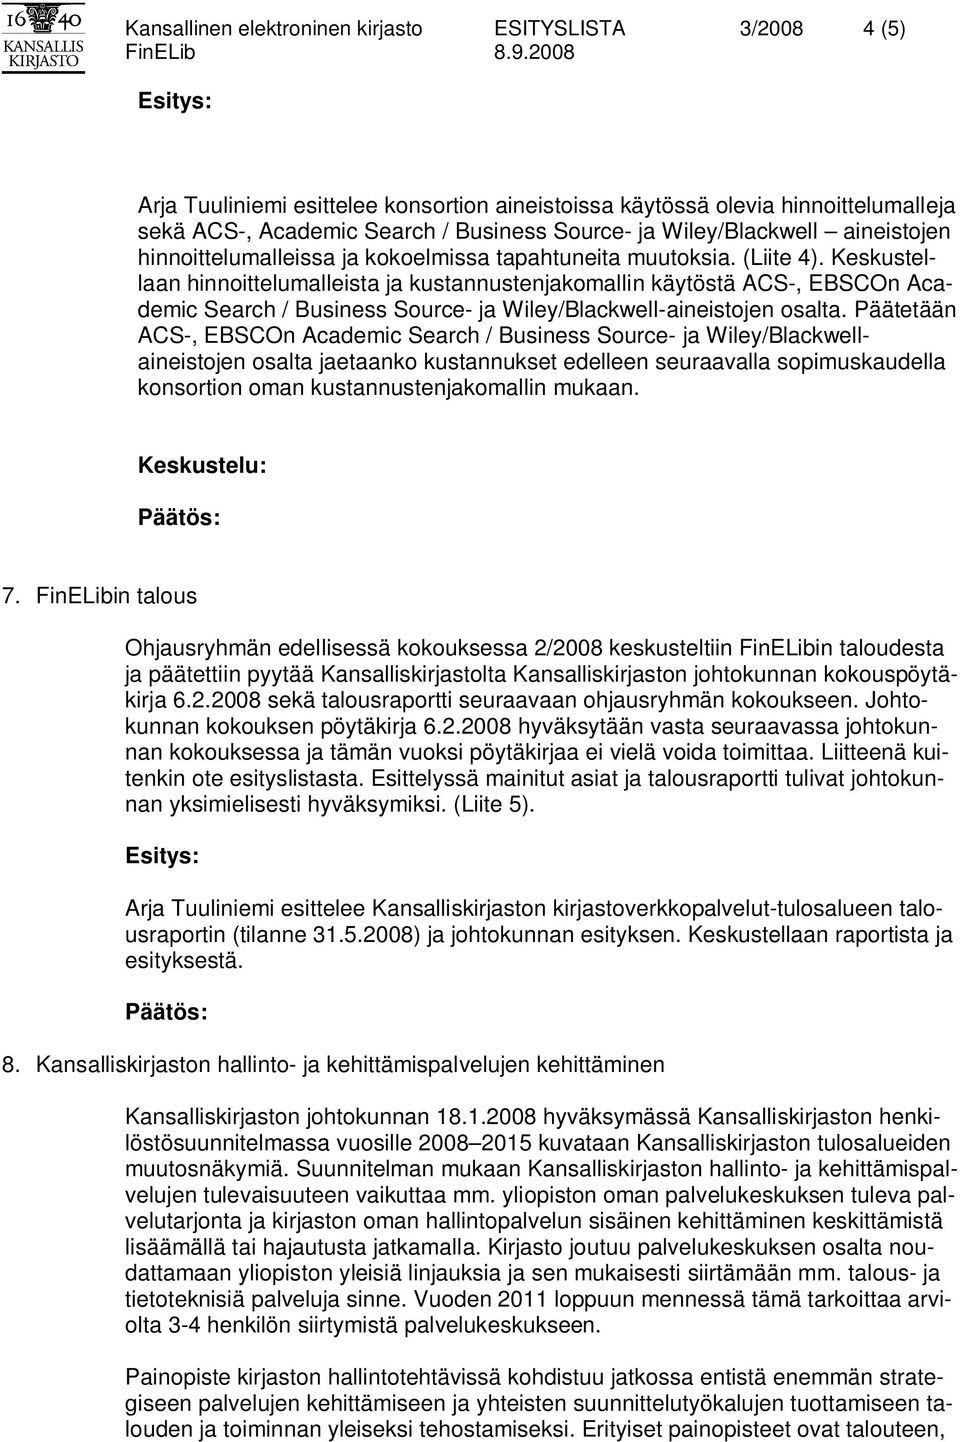 Keskustellaan hinnoittelumalleista ja kustannustenjakomallin käytöstä ACS-, EBSCOn Academic Search / Business Source- ja Wiley/Blackwell-aineistojen osalta.